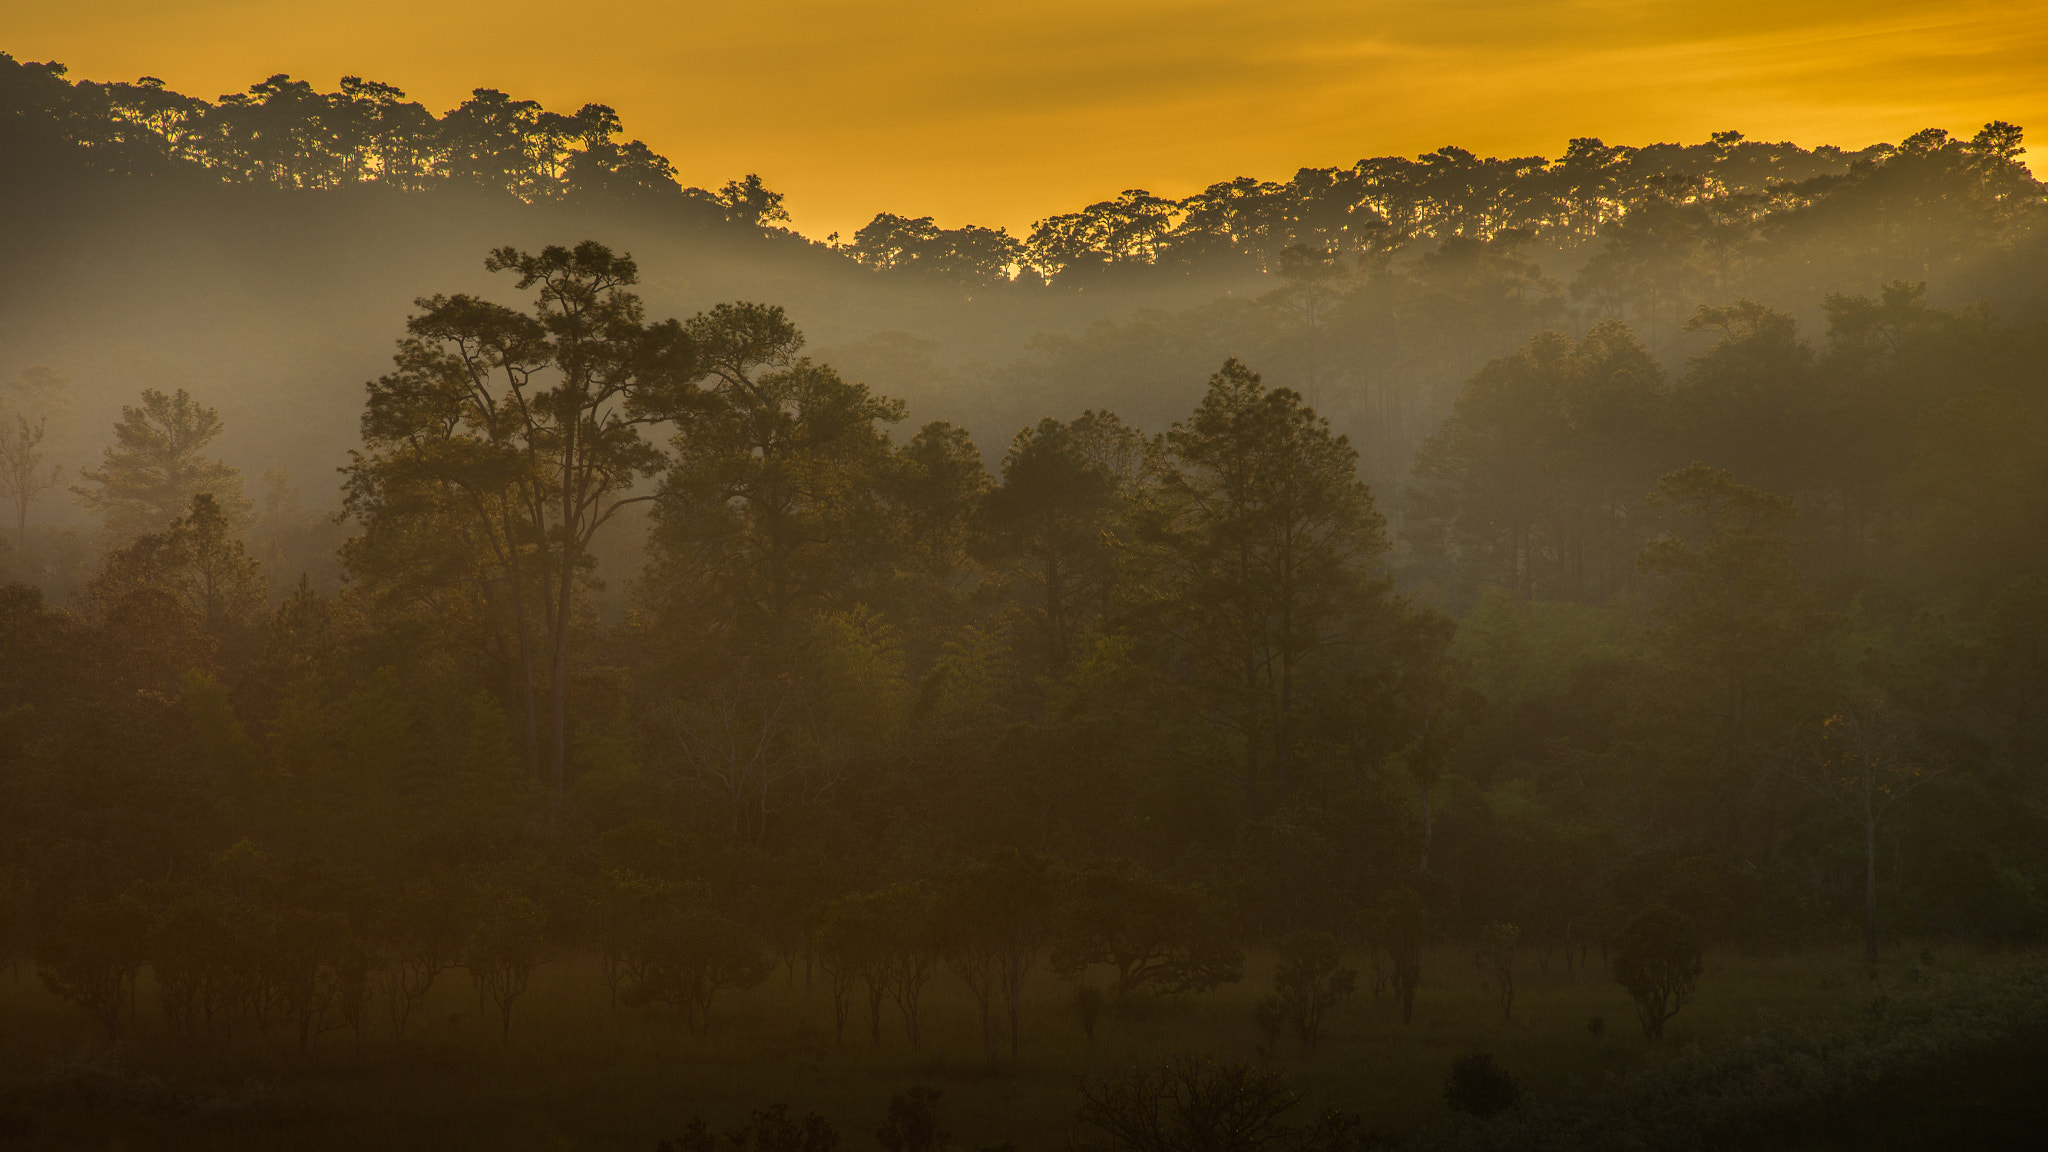 Photograph Sunset in the forrest by Natapong P. on 500px